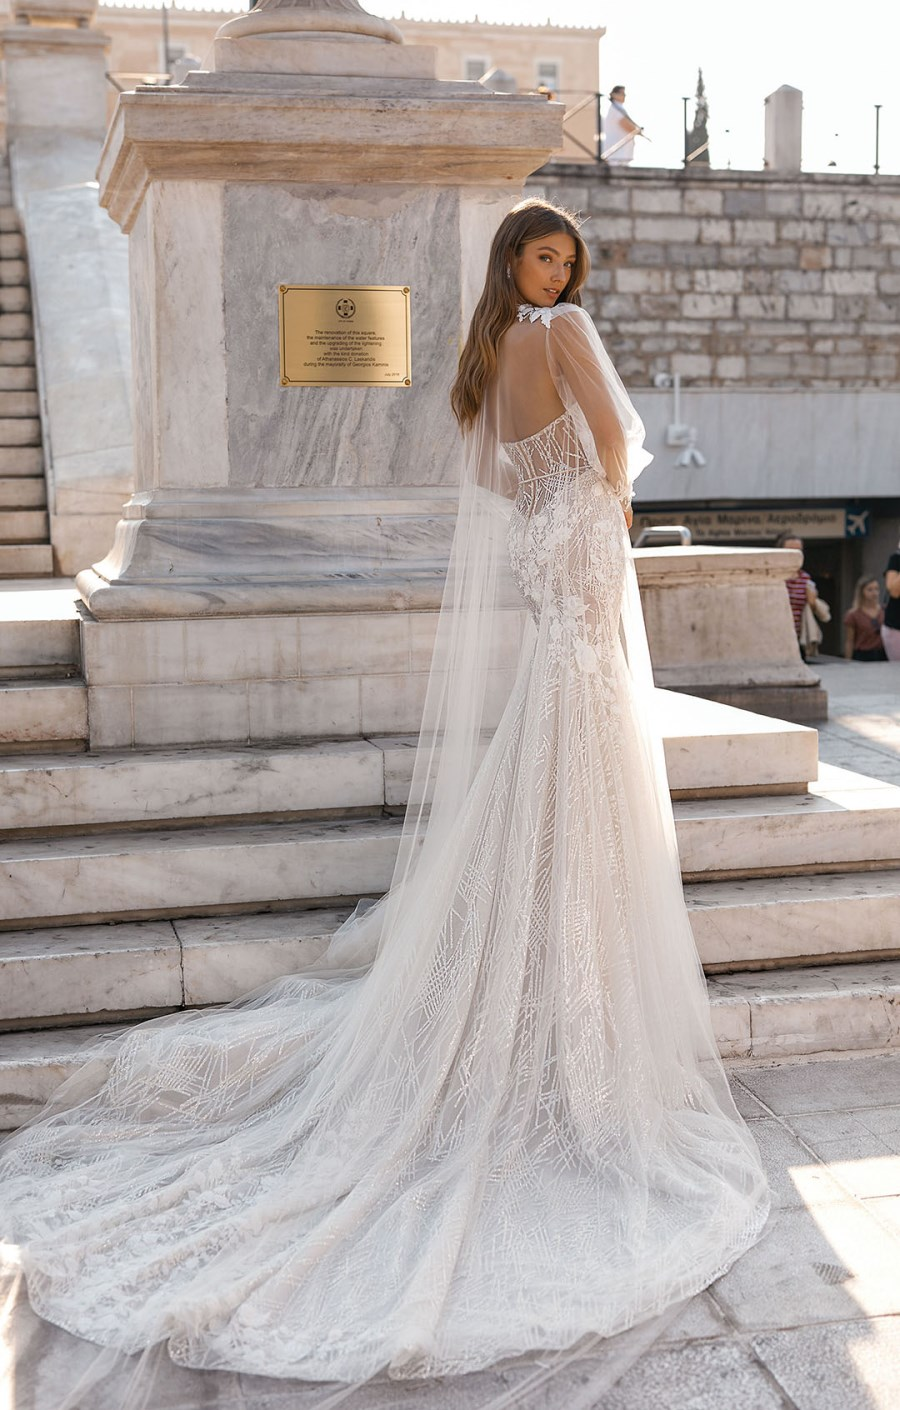 berta-wedding-dress-2019-1 (10)_2